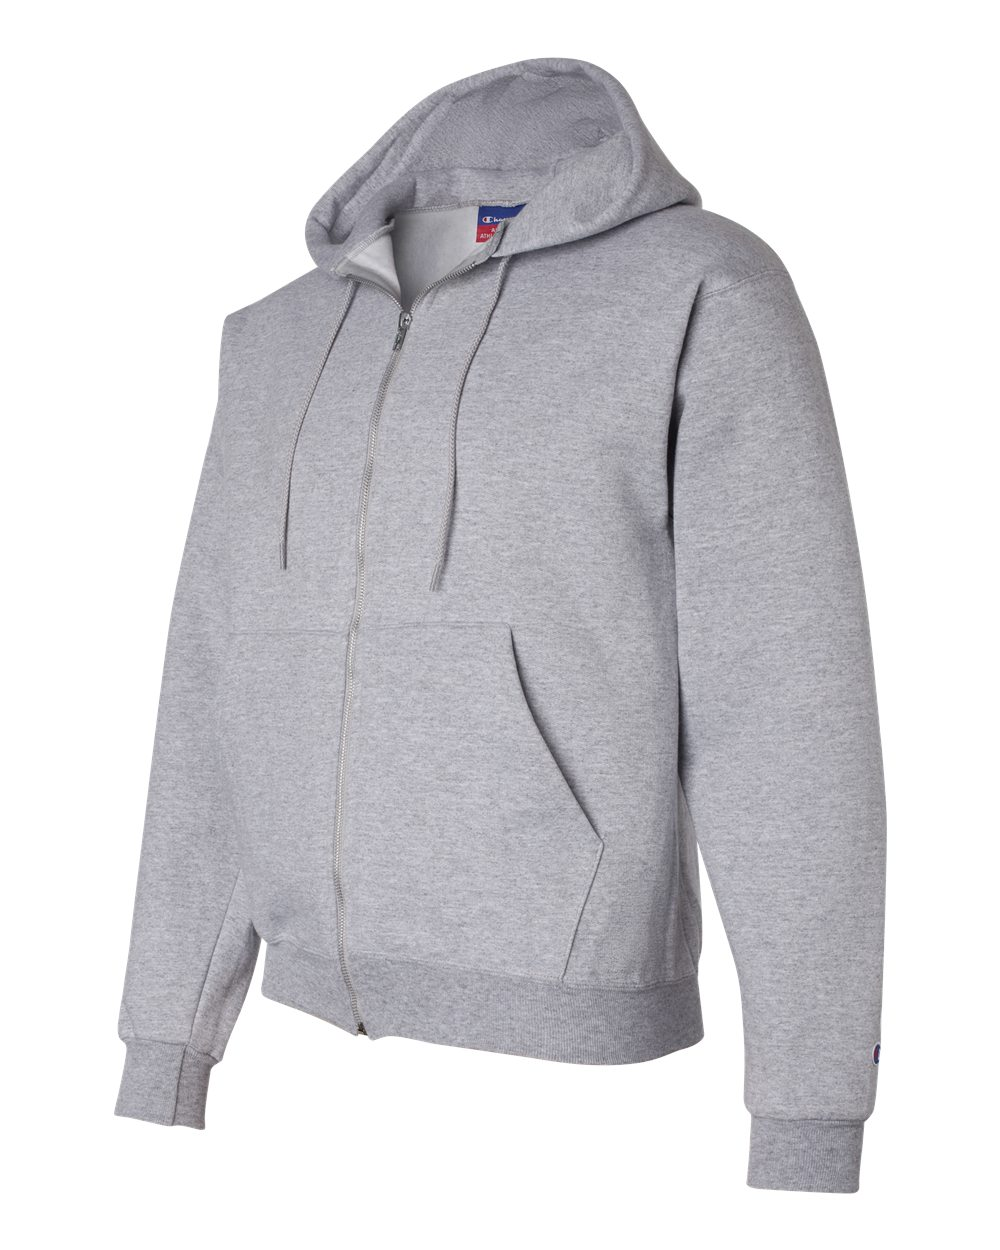 Champion S800  9 oz., 50/50 Full-Zip Hooded Fleece